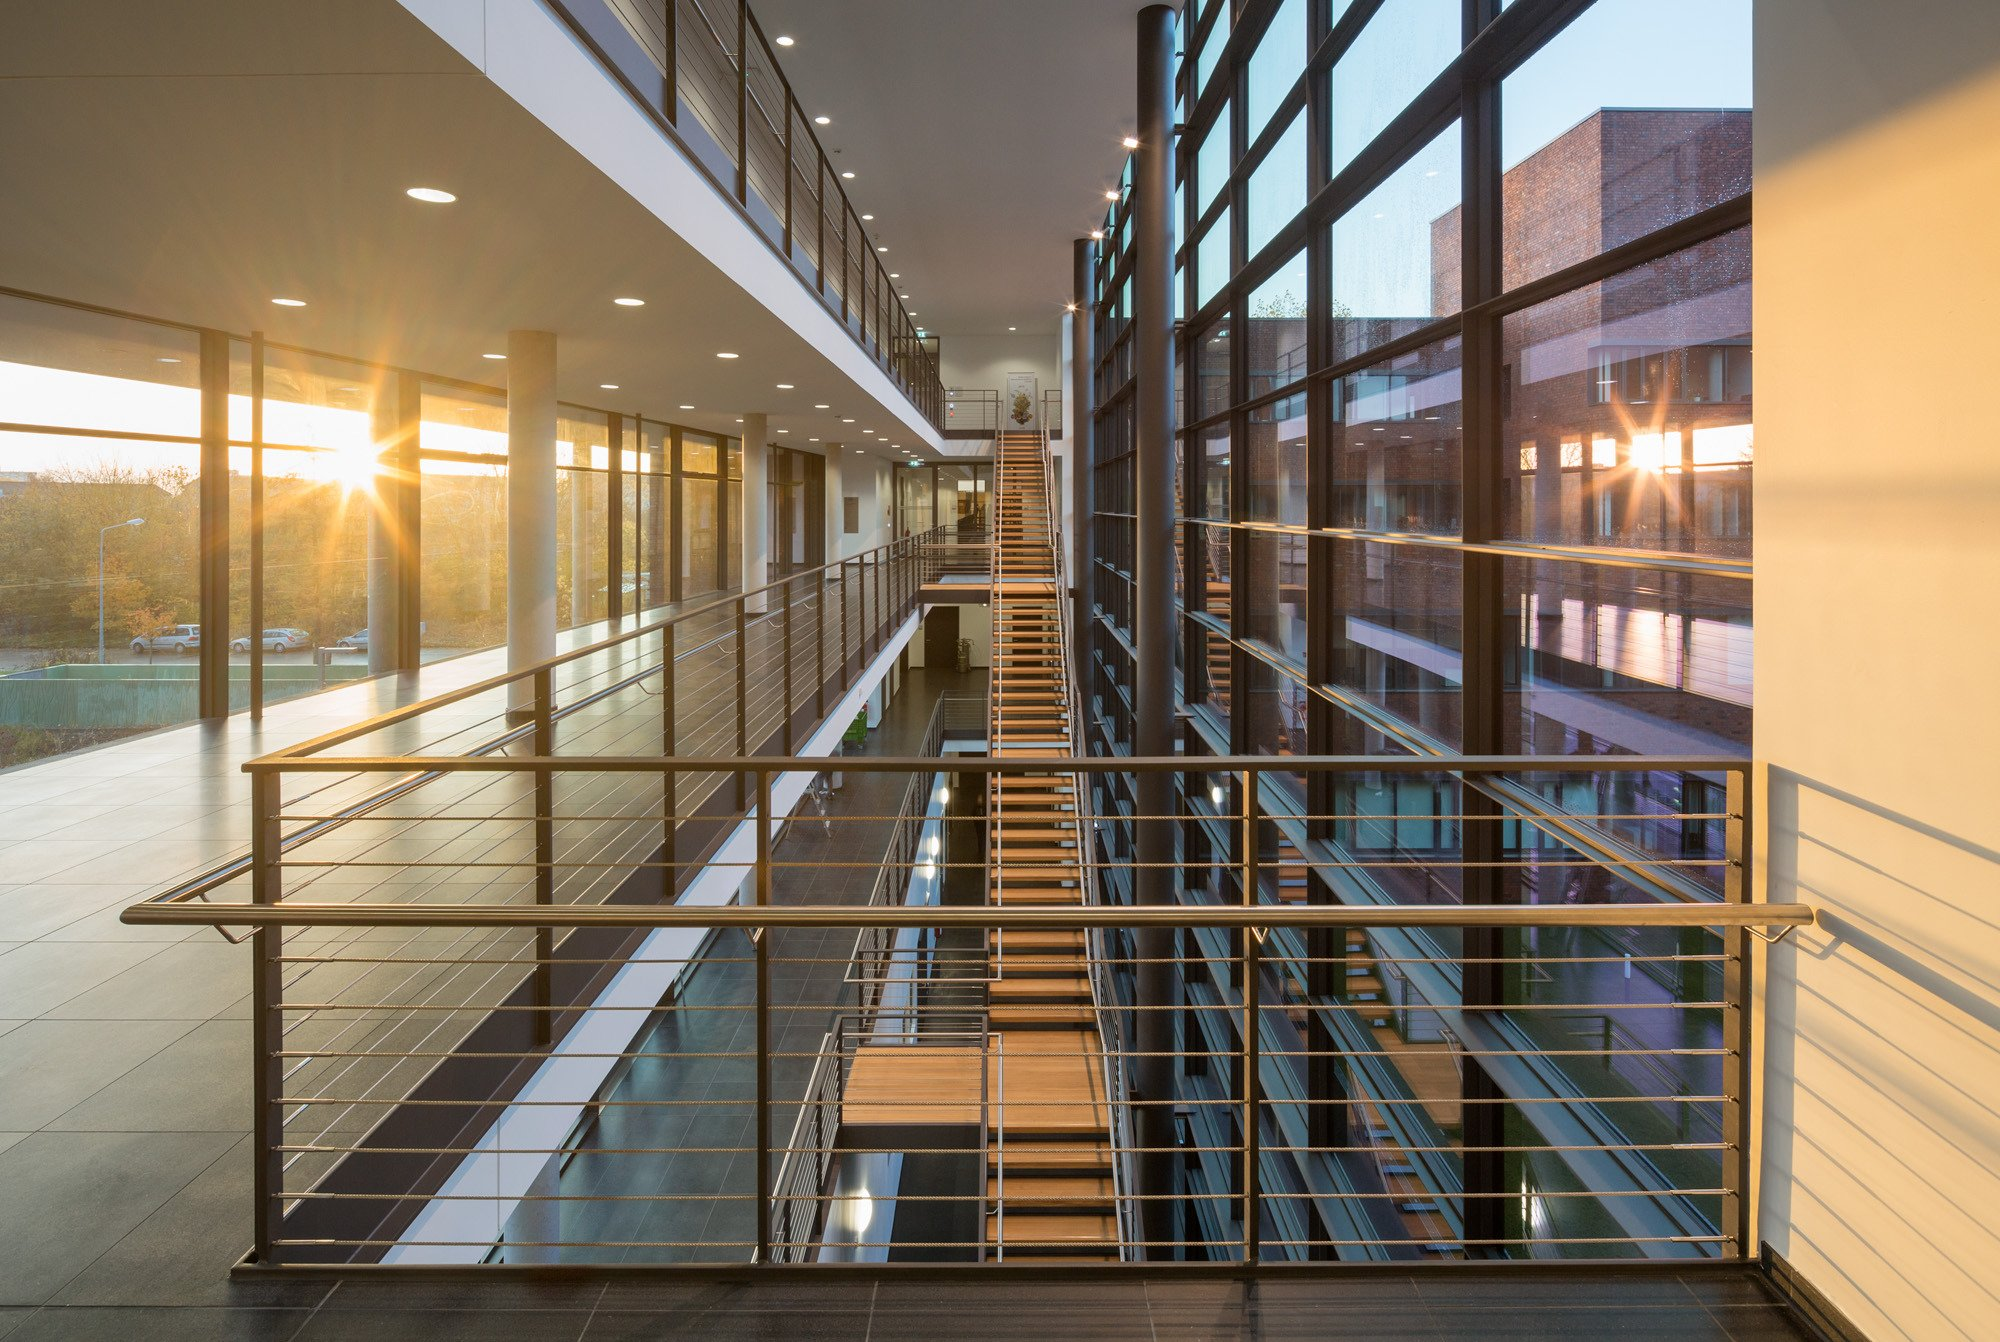 Smart Railings At Rostock University Carl Stahl Architecture